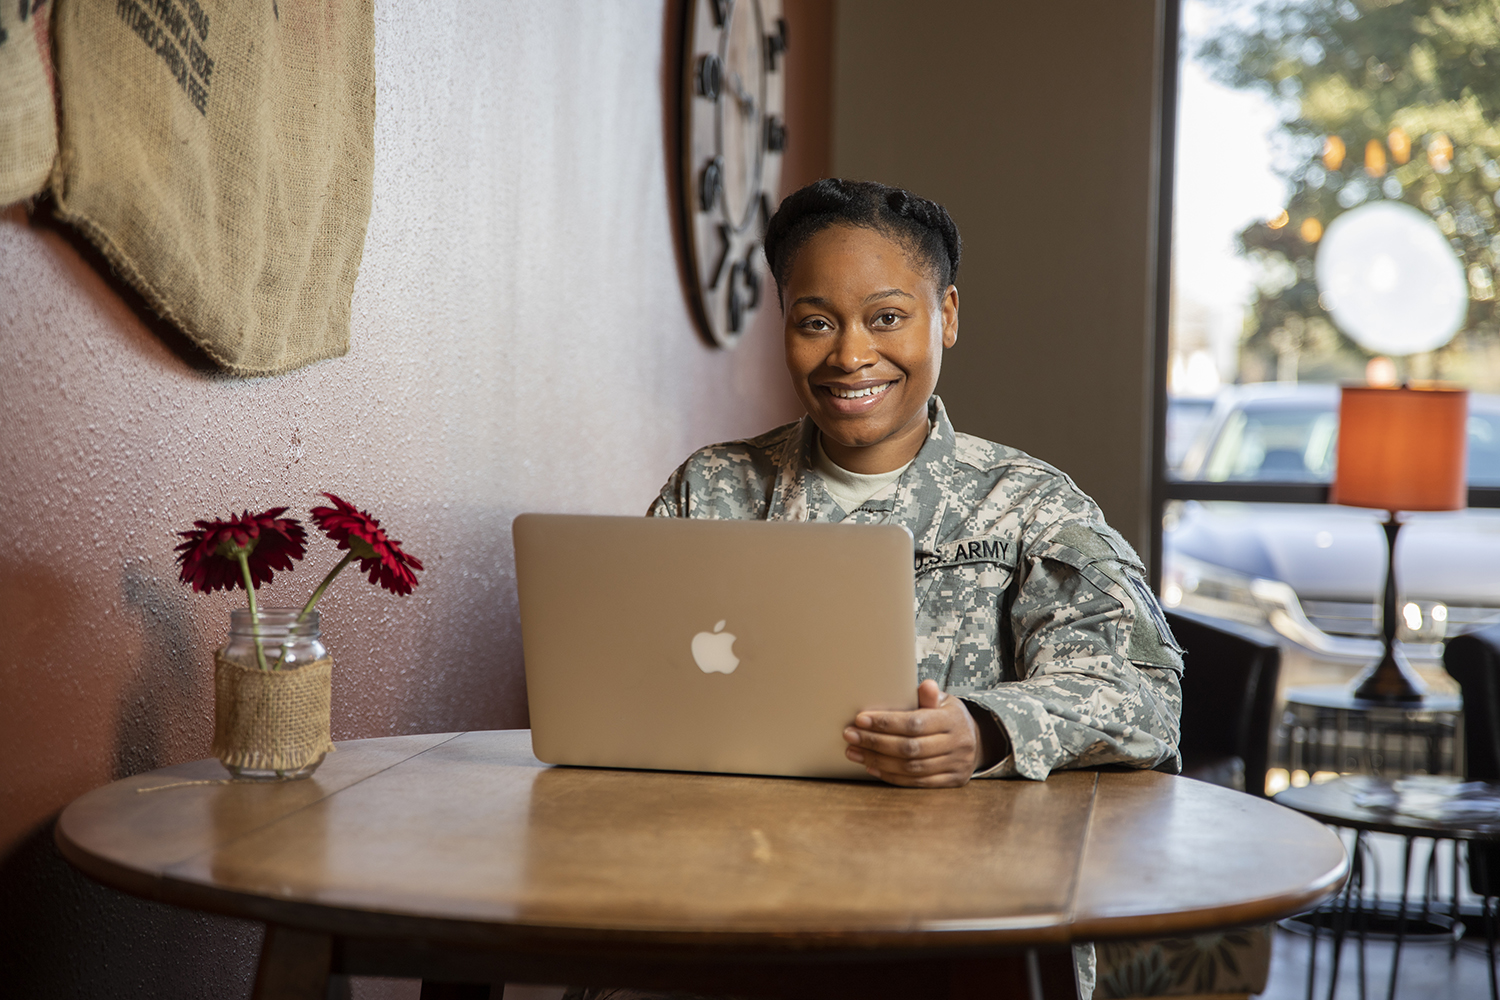 A UWF military student studying and completing coursework at the Coffee Break Cafe coffee shop in Pace, Florida on Monday, Jan. 28, 2019. Thanks to UWF's online course offerings, students can take courses and earn a university degree no matter where they may be.